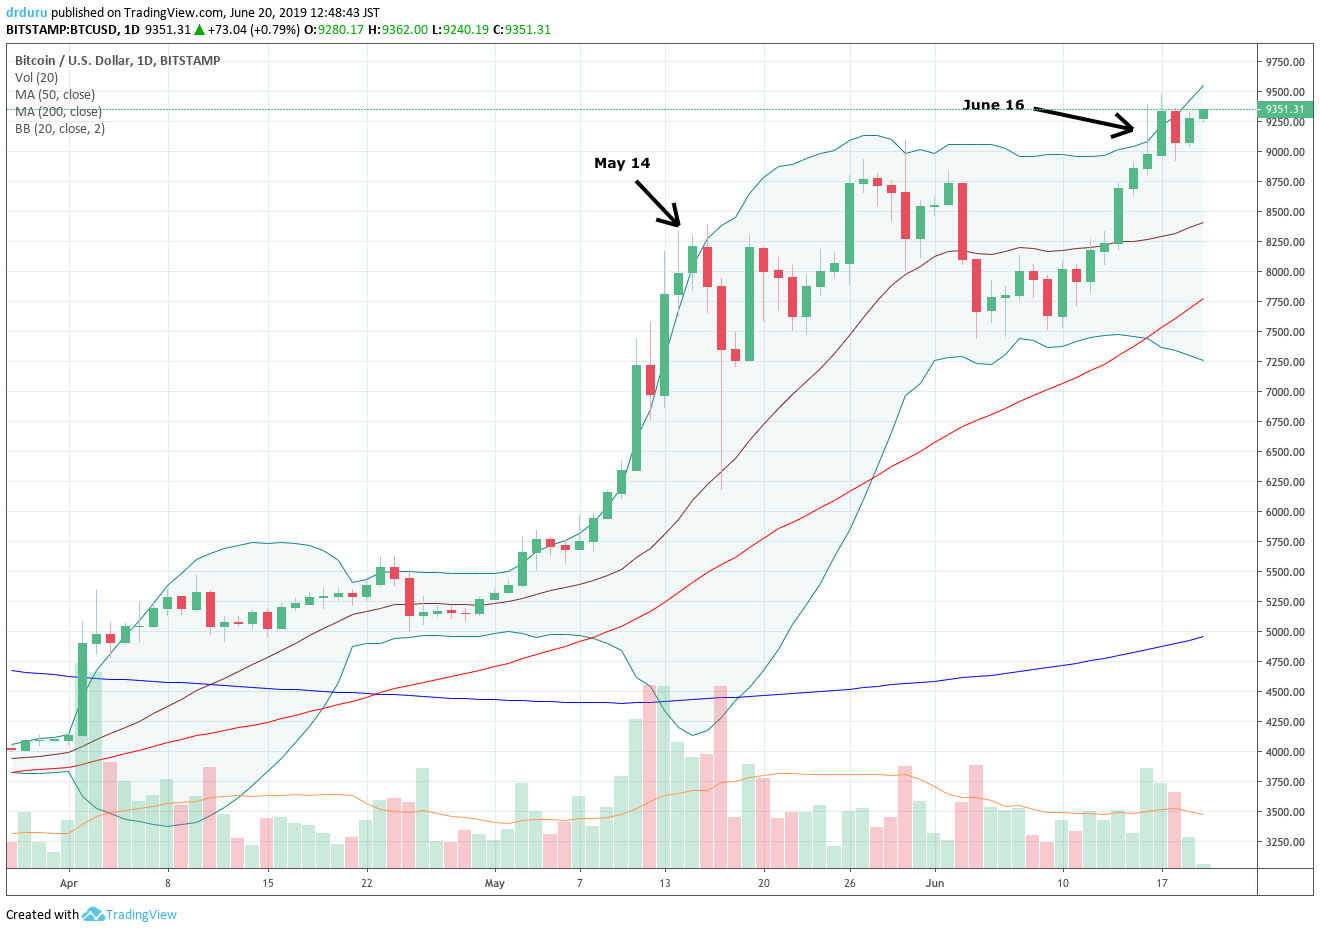 Bitcoin (BTC-USD) broke out to a 13-month high and looks poised for a fresh run-up